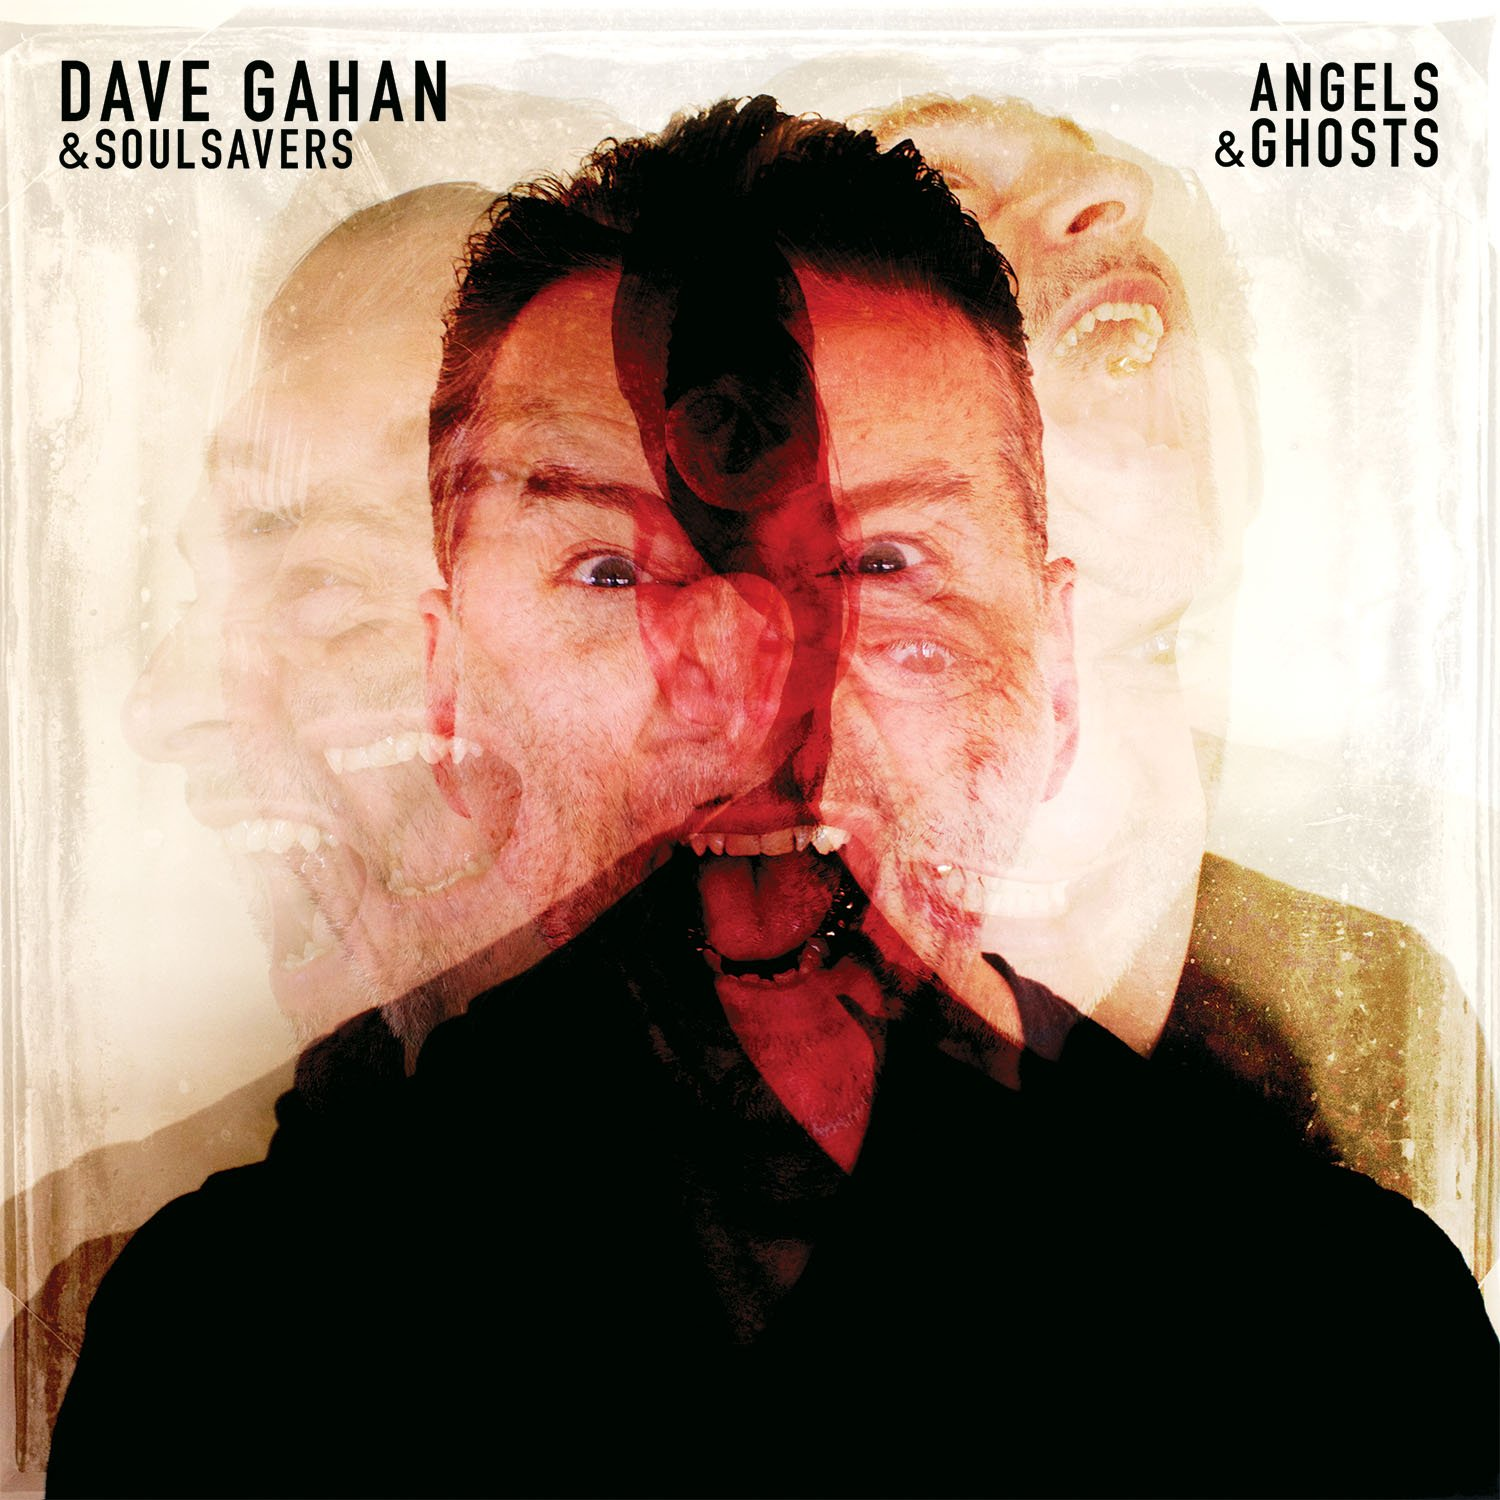 Dave-Gahan-Angels-Ghosts-album-cover-layered-86863543